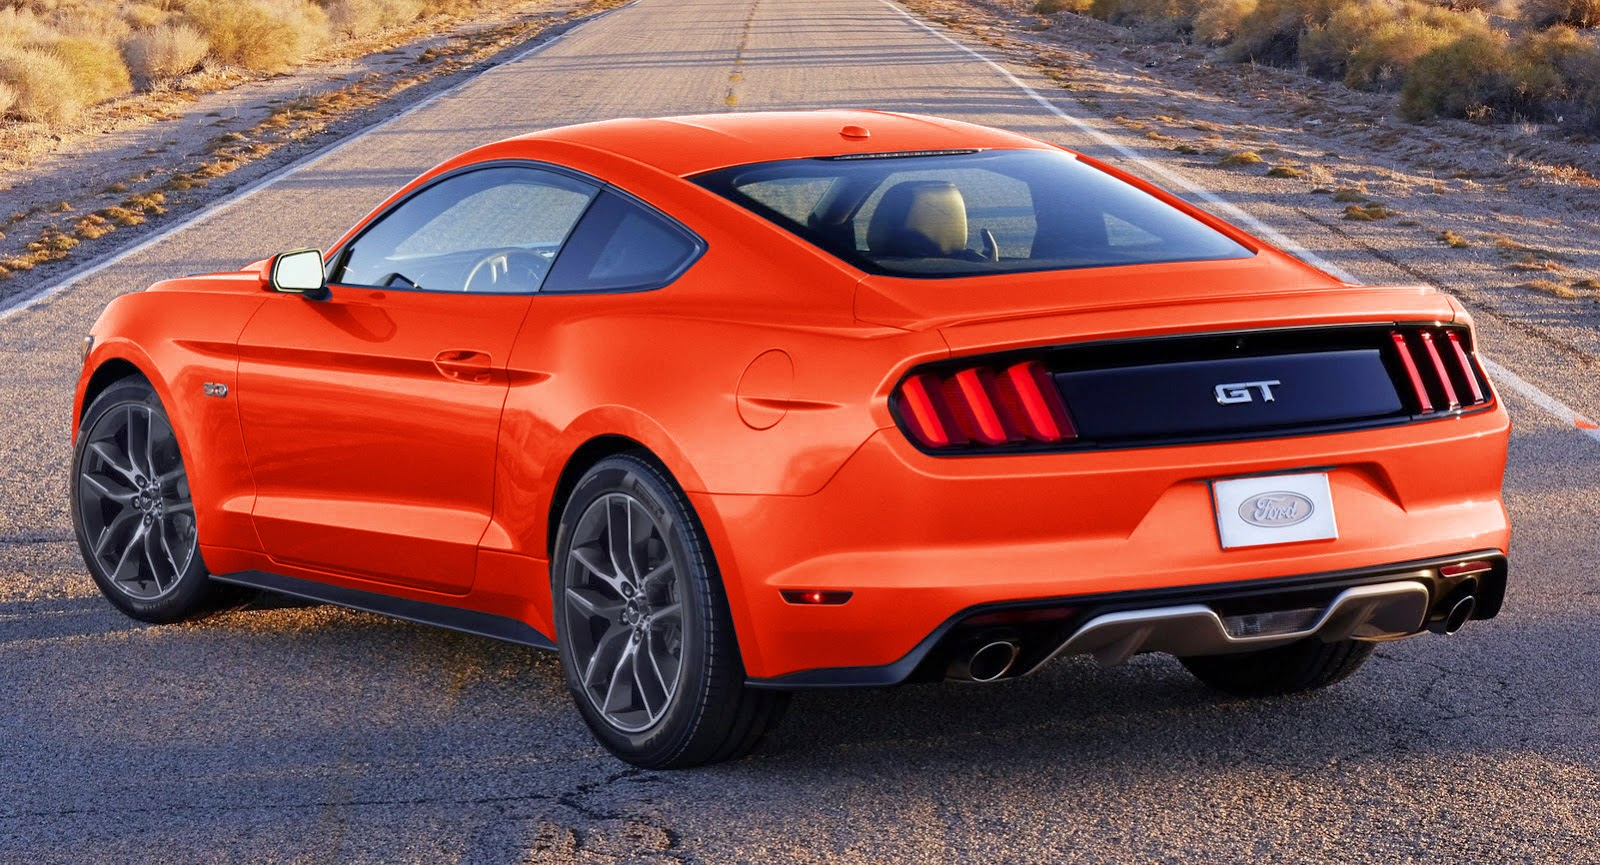 2015 Ford Mustang convertible sports cars are now more powerful